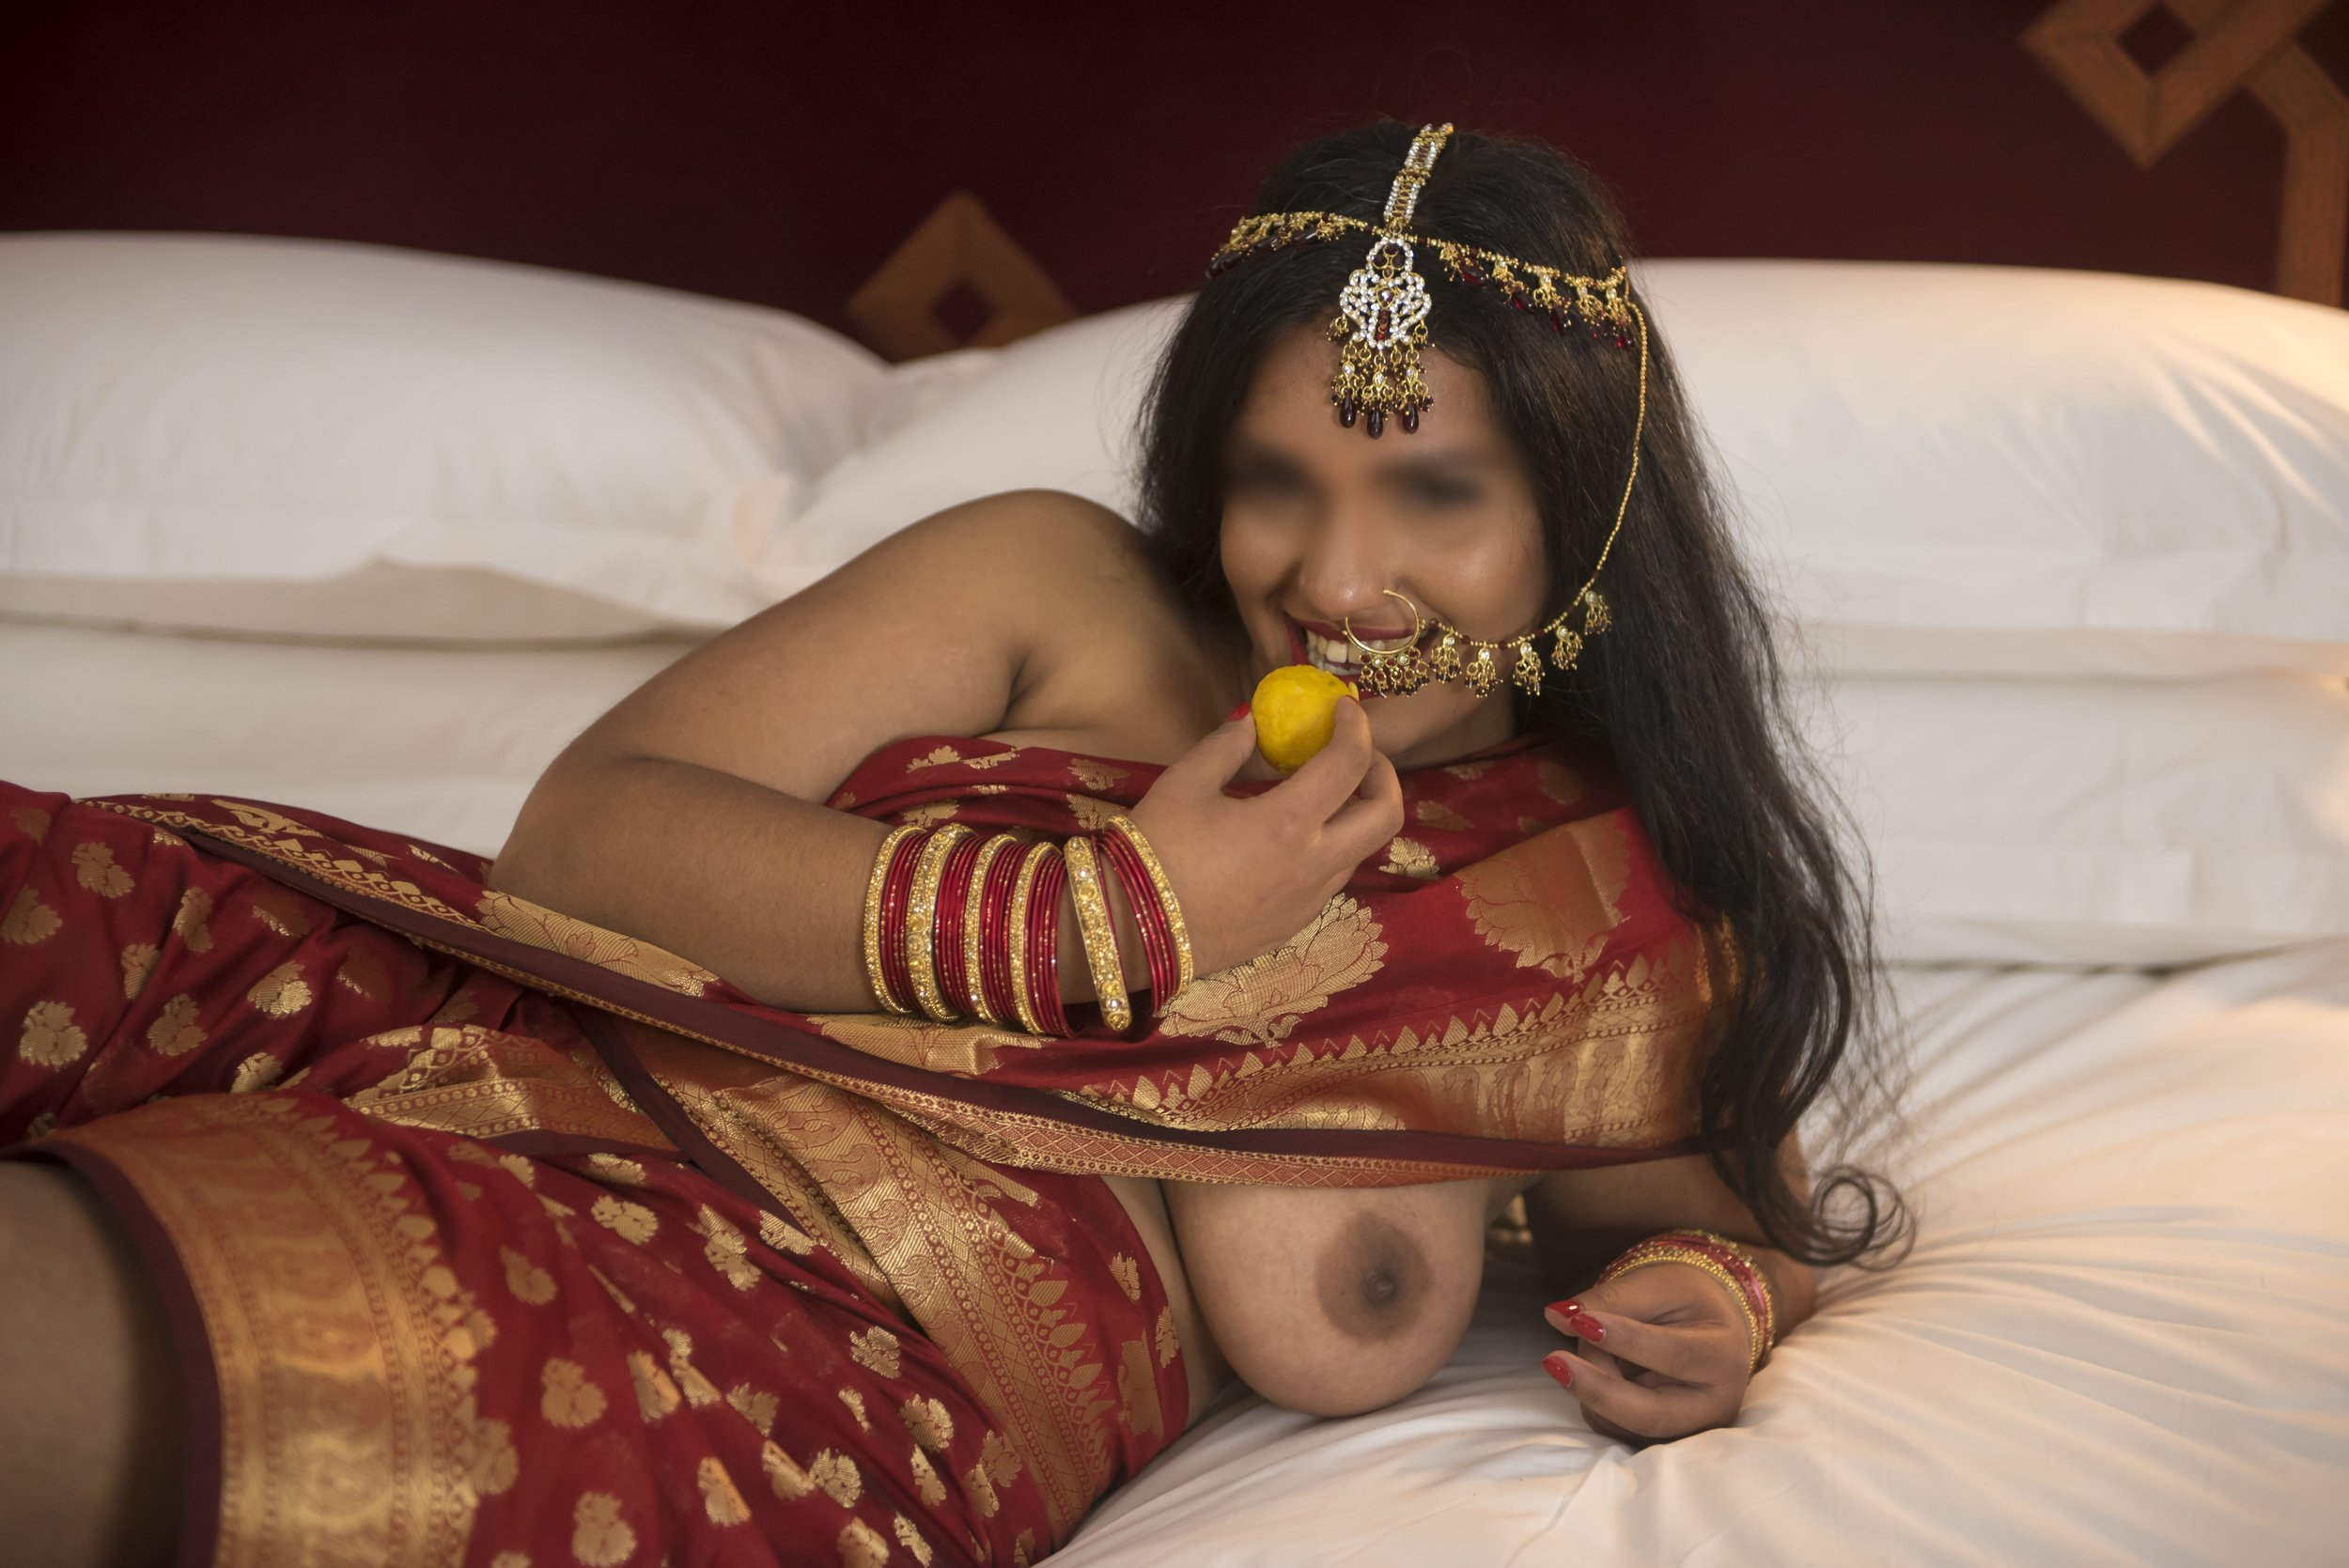 Jasmine Praveena - Adventurous muse, whimsical disciplinarian. I am in love with Jasmine's joyful and playful approach to kink and companionship. Her curves, compassion, and of course, her great taste in books has made her one of my favorite people in this world of pleasure.